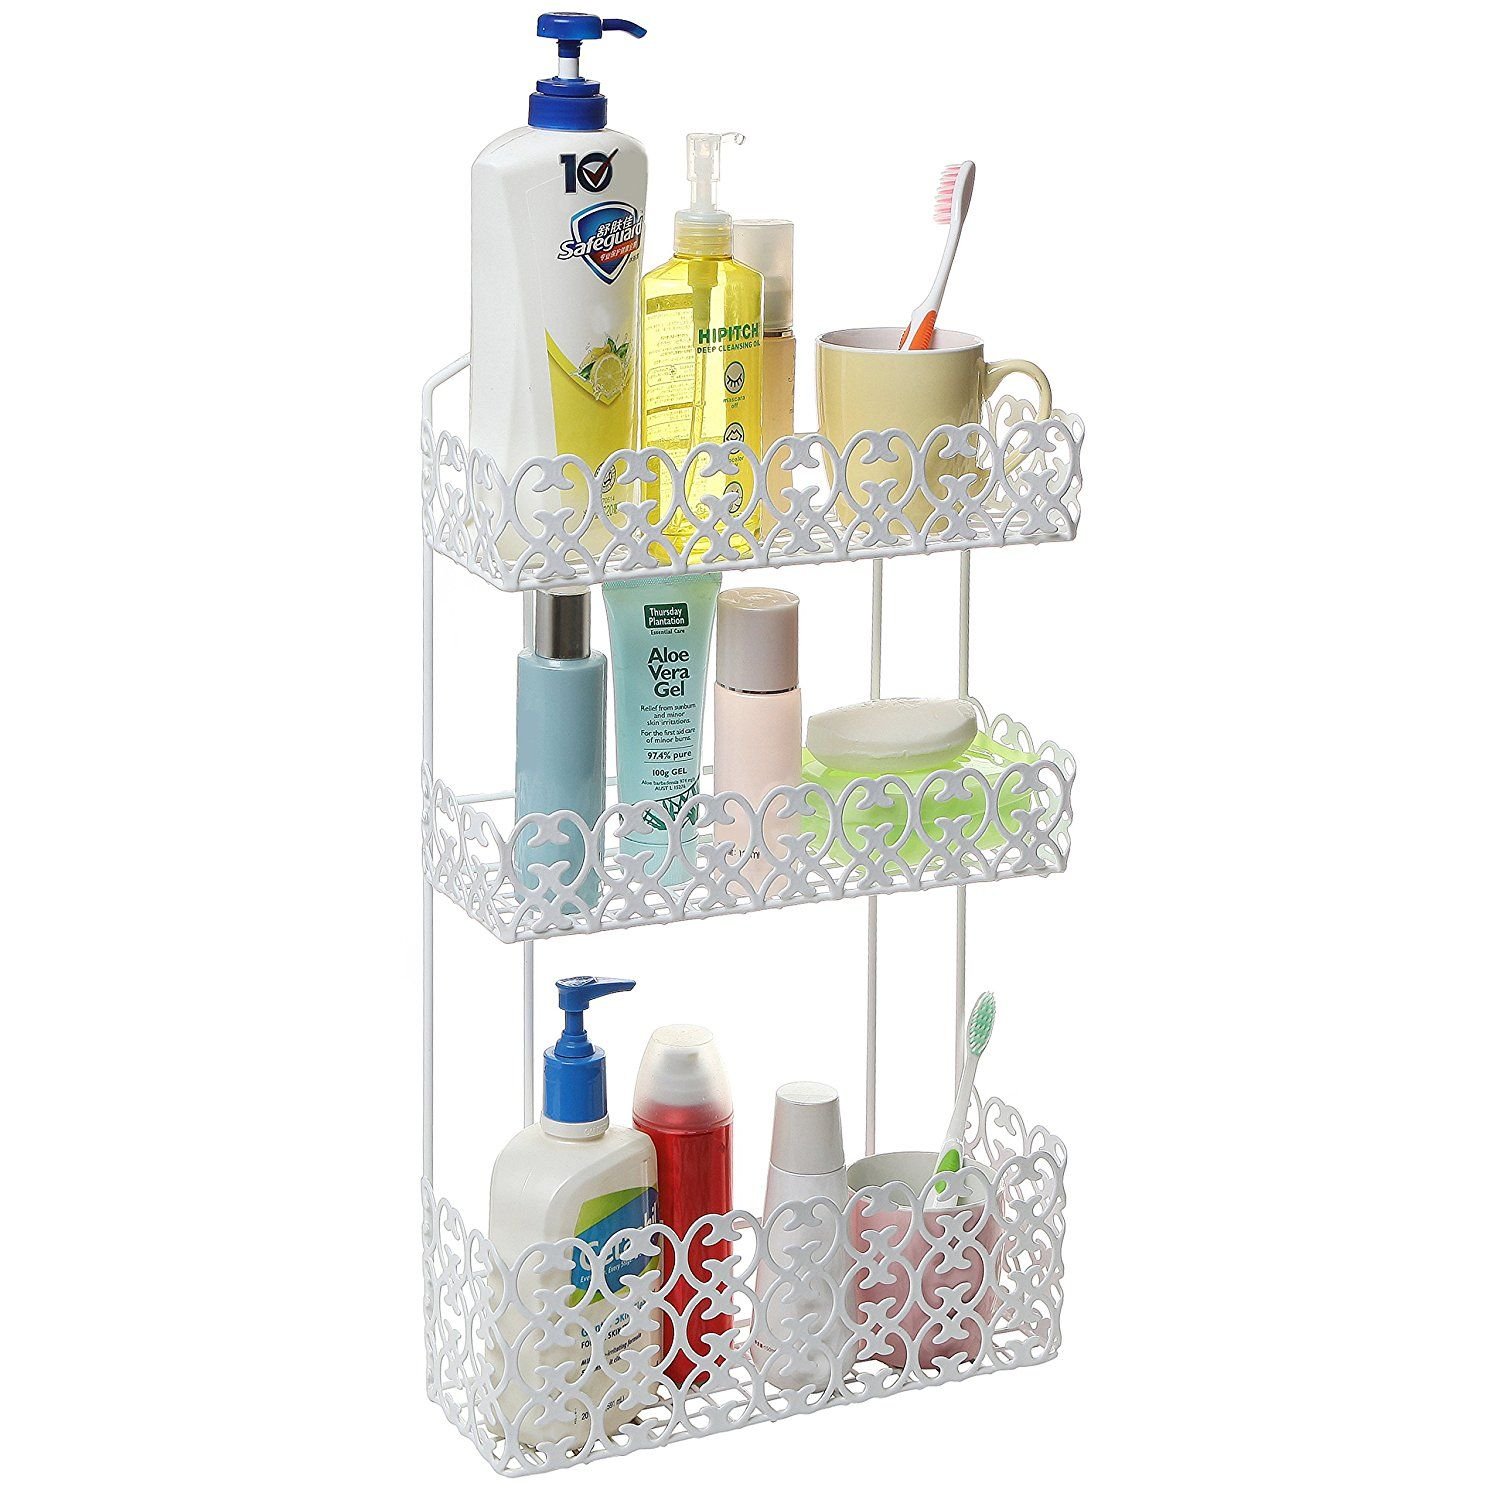 Decorative White Wall Mounted 3 Tier Shelf Baskets